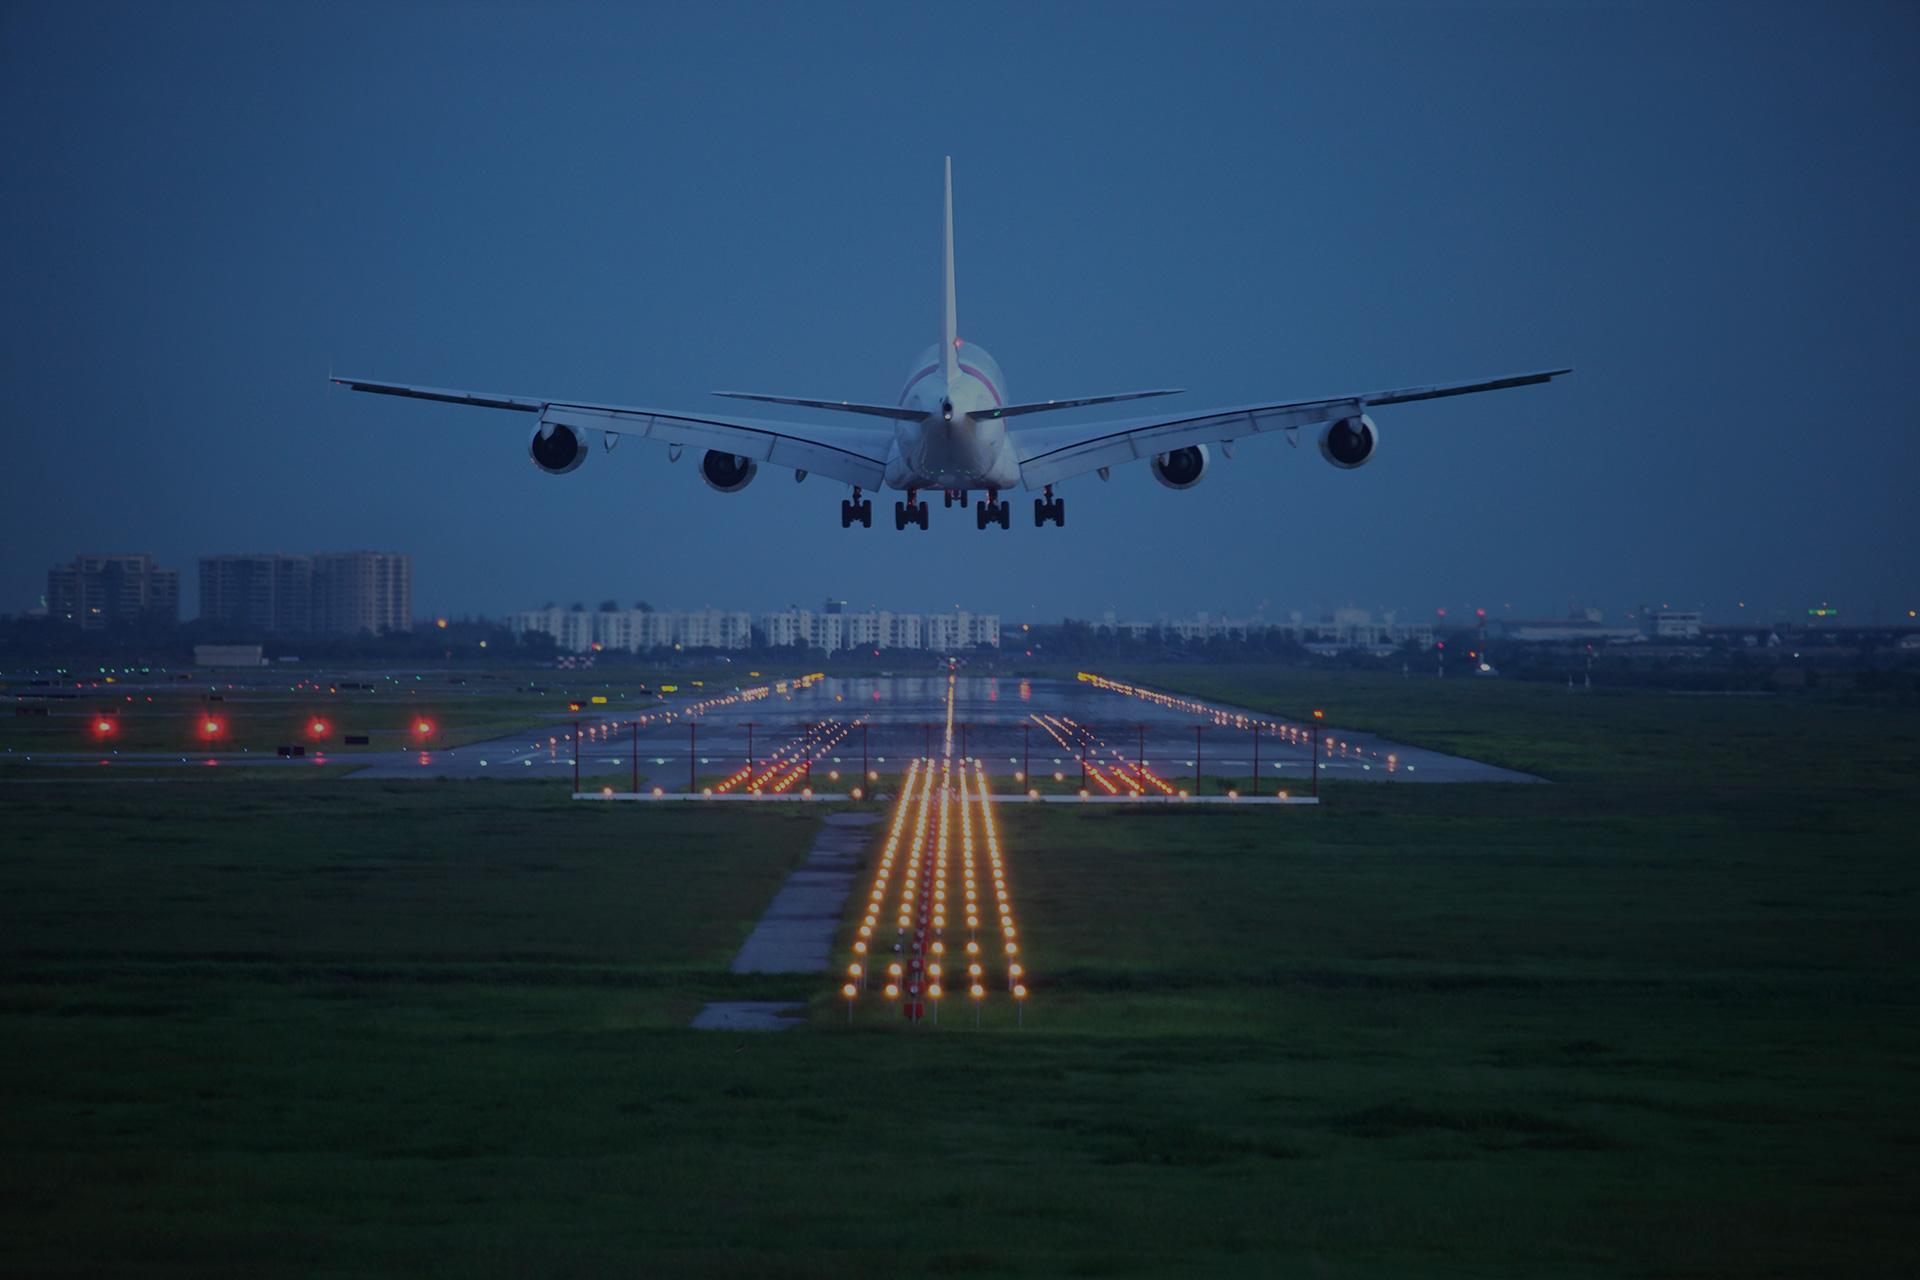 Aviation Plane Coming in for Landing. Flight Planning Services and Flight Planning Solutions